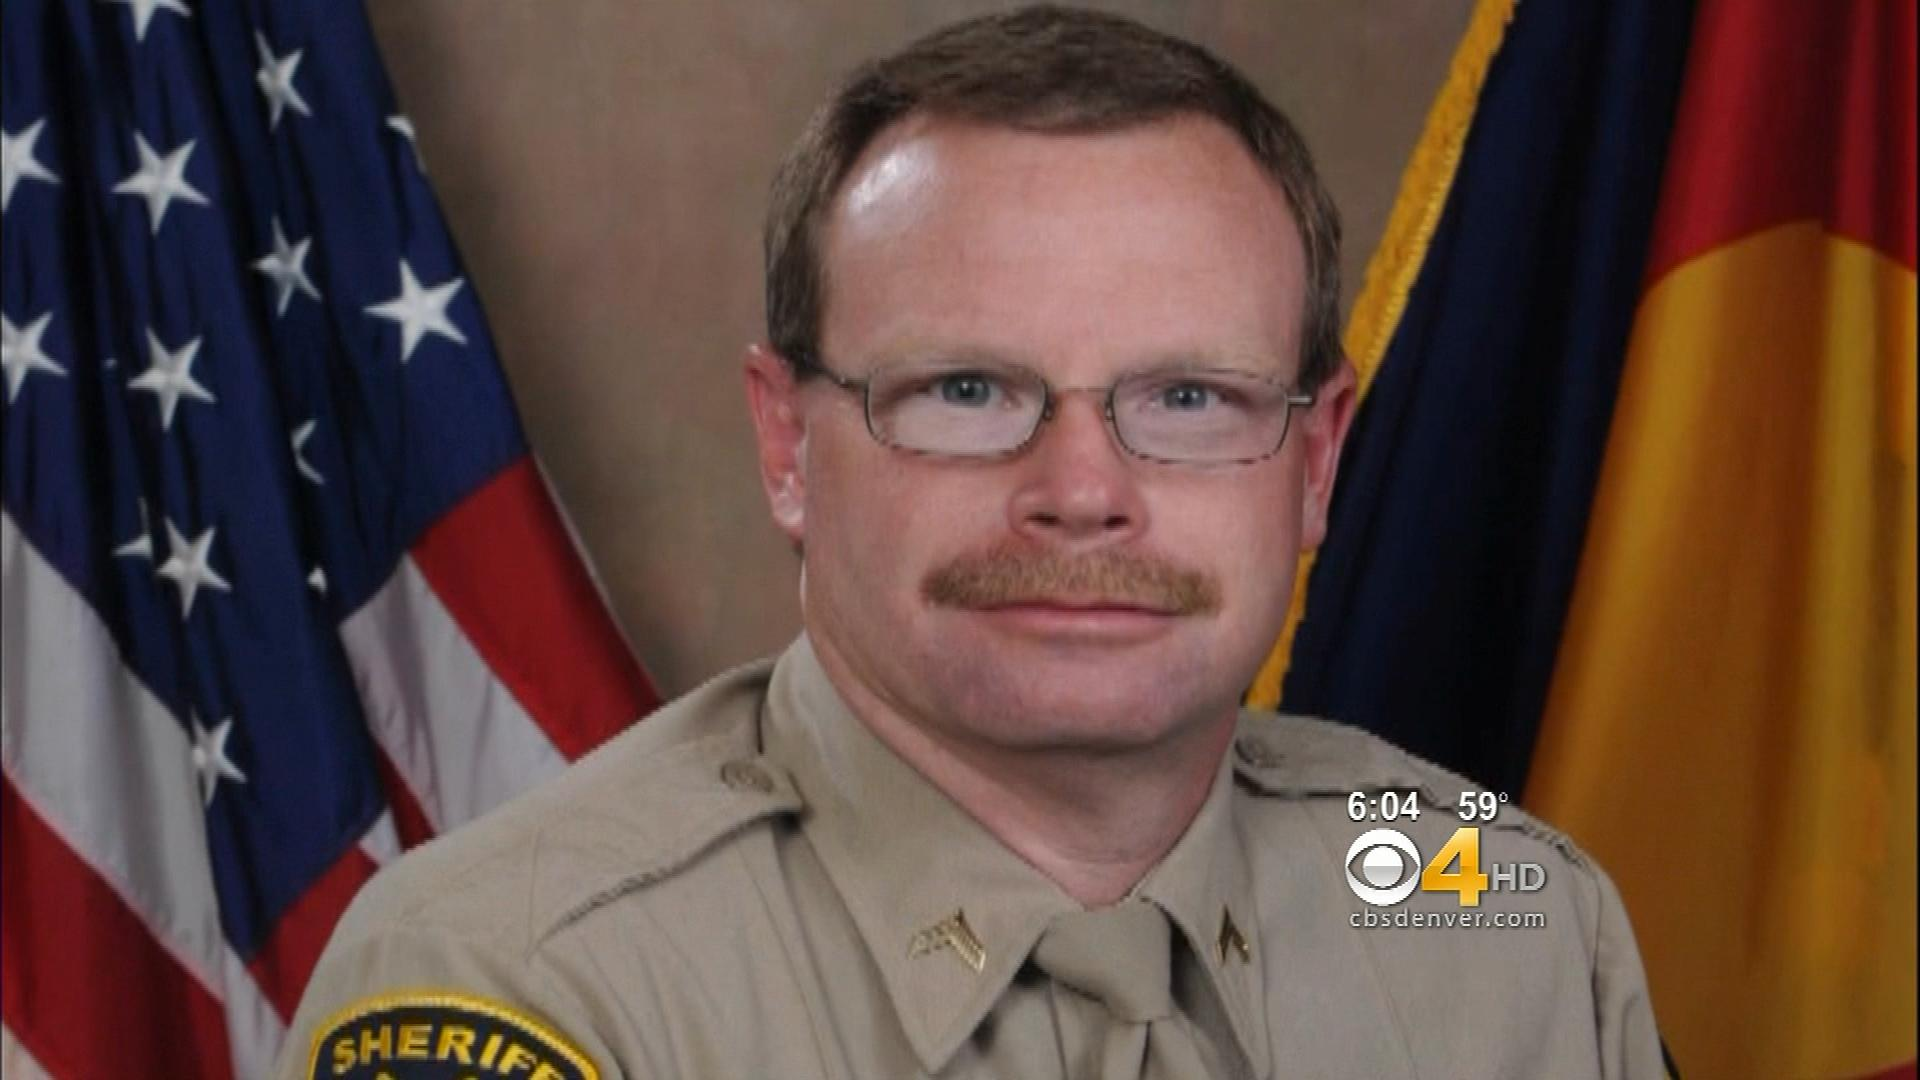 Detective Kyle Hall (credit: Eagle County Sheriff's Office)